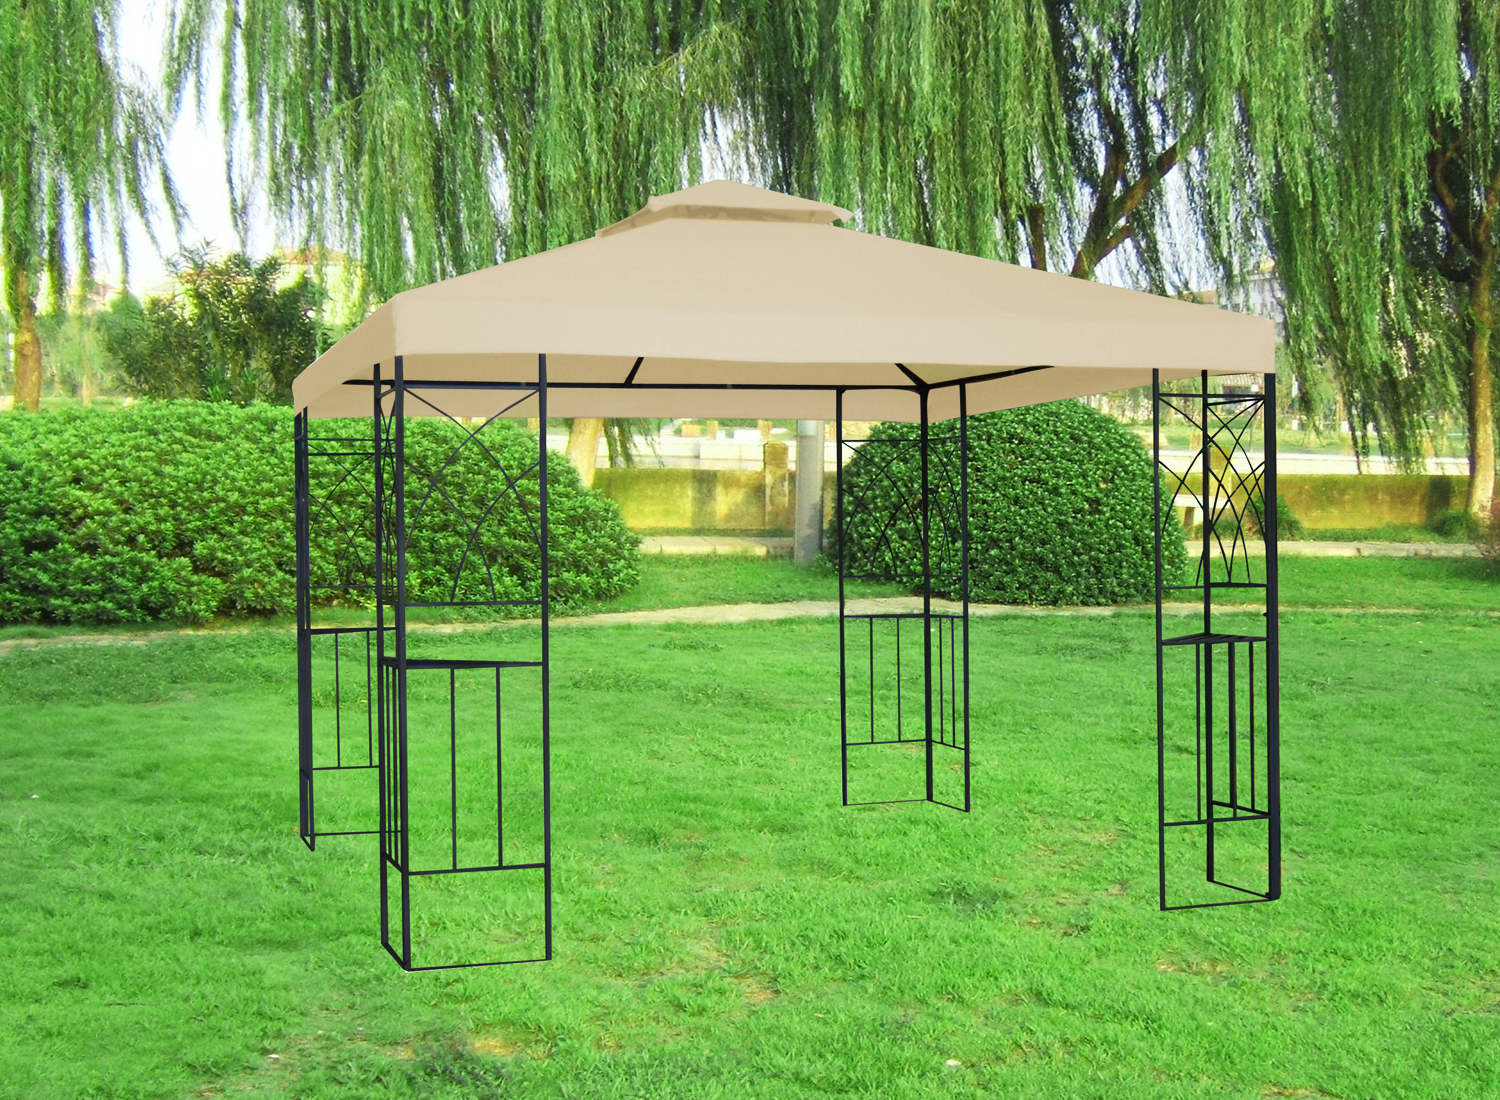 3x3m metal gazebo pavilion garden canopy sun shade shelter. Black Bedroom Furniture Sets. Home Design Ideas